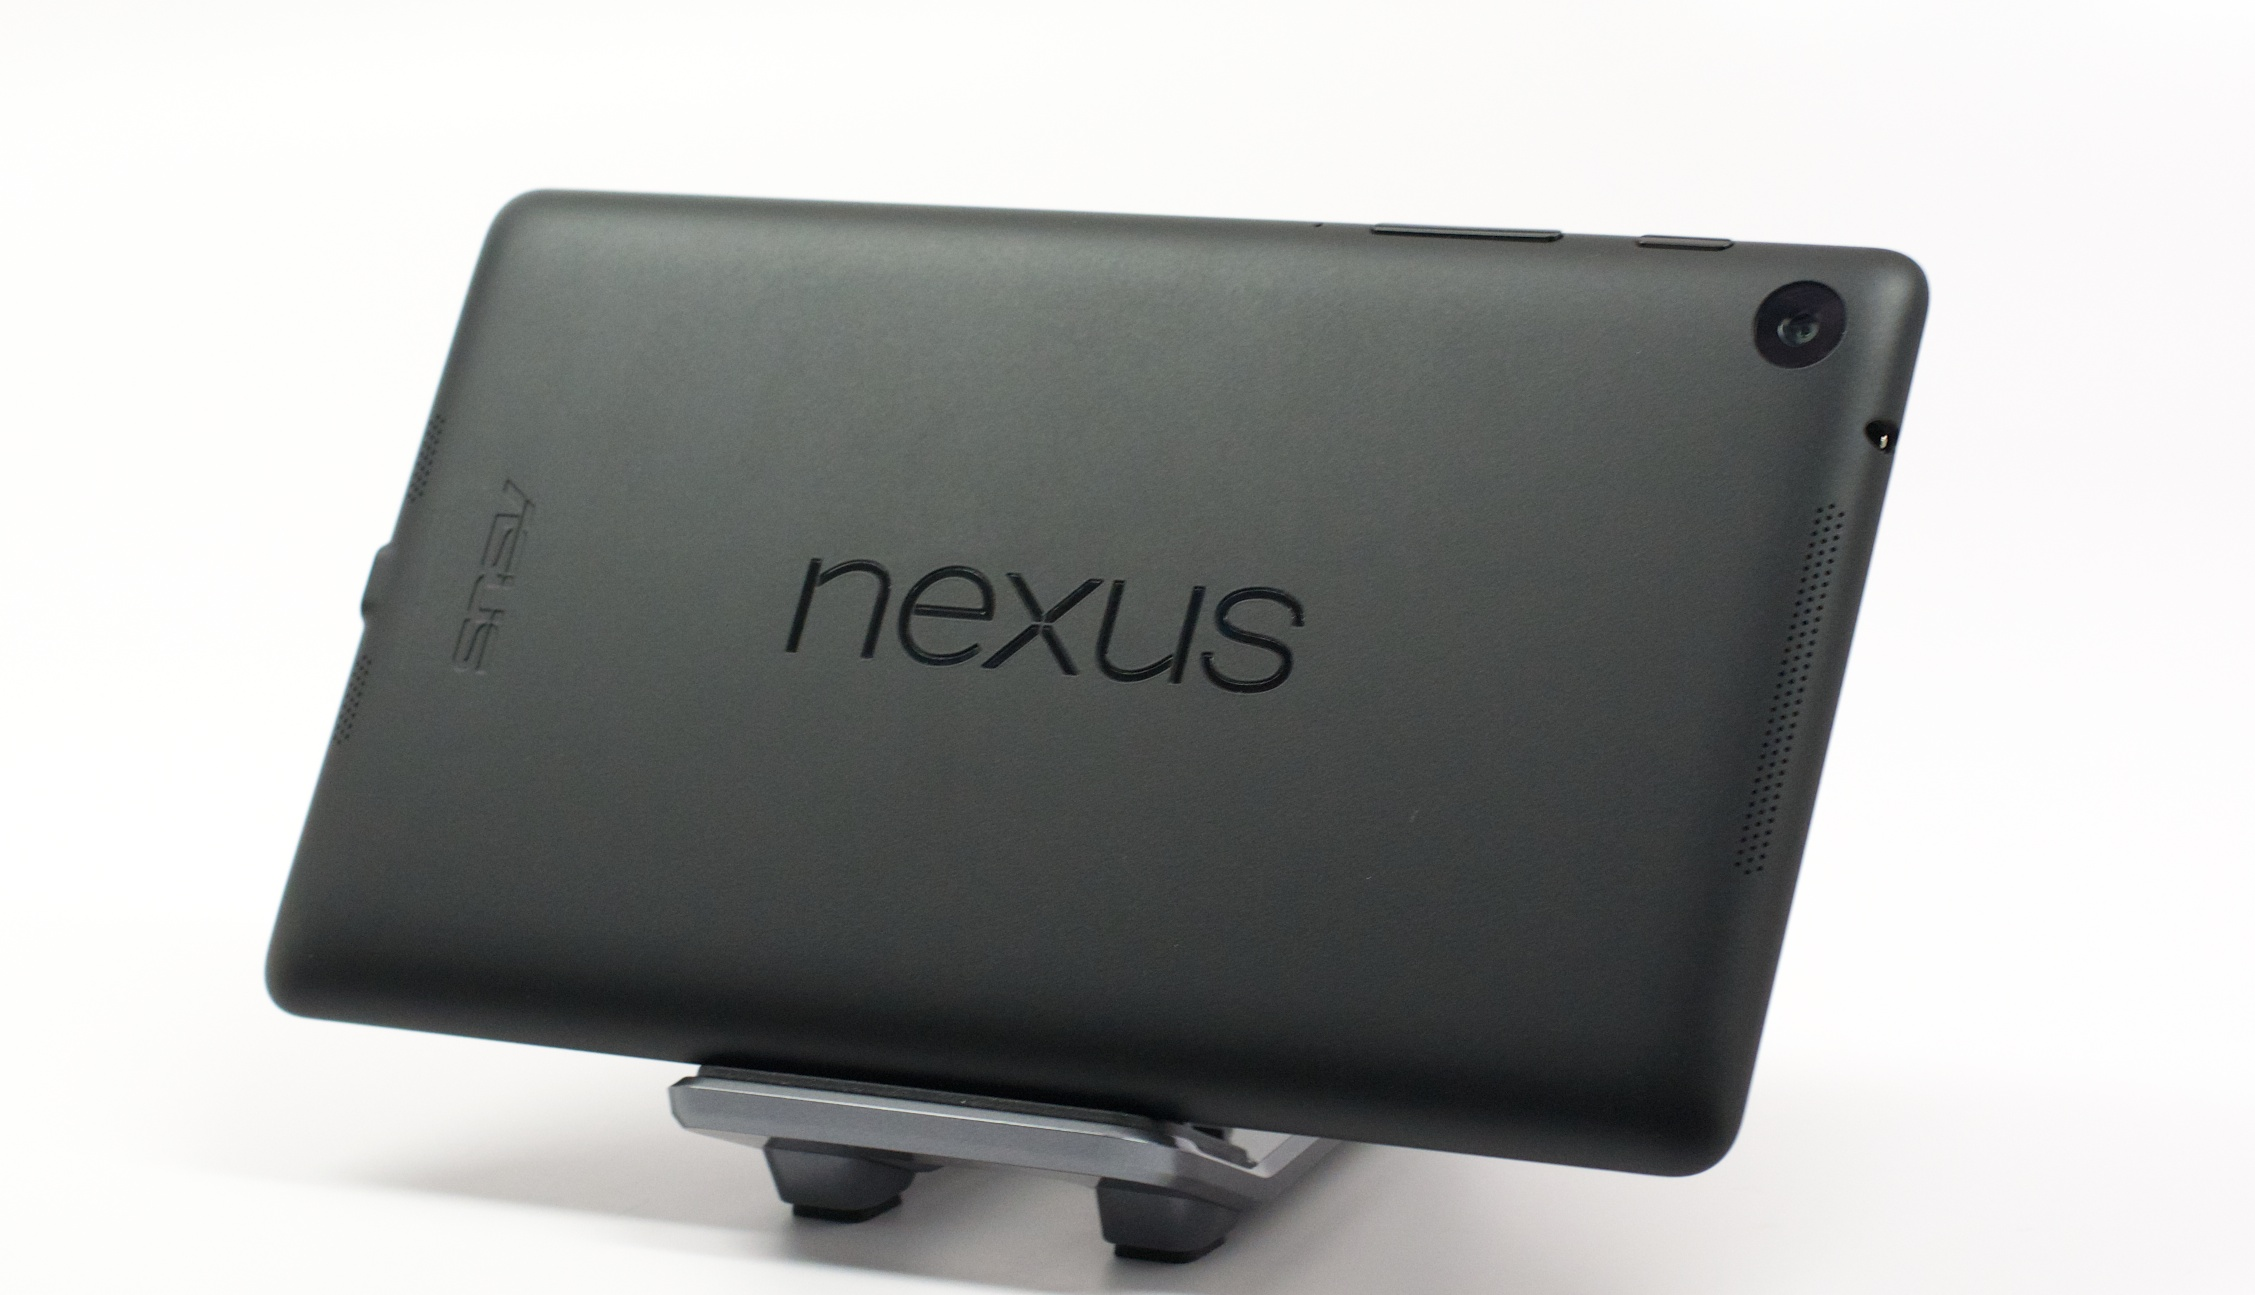 The new Nexus 7 design is matte black, slimmer and soft to the touch.